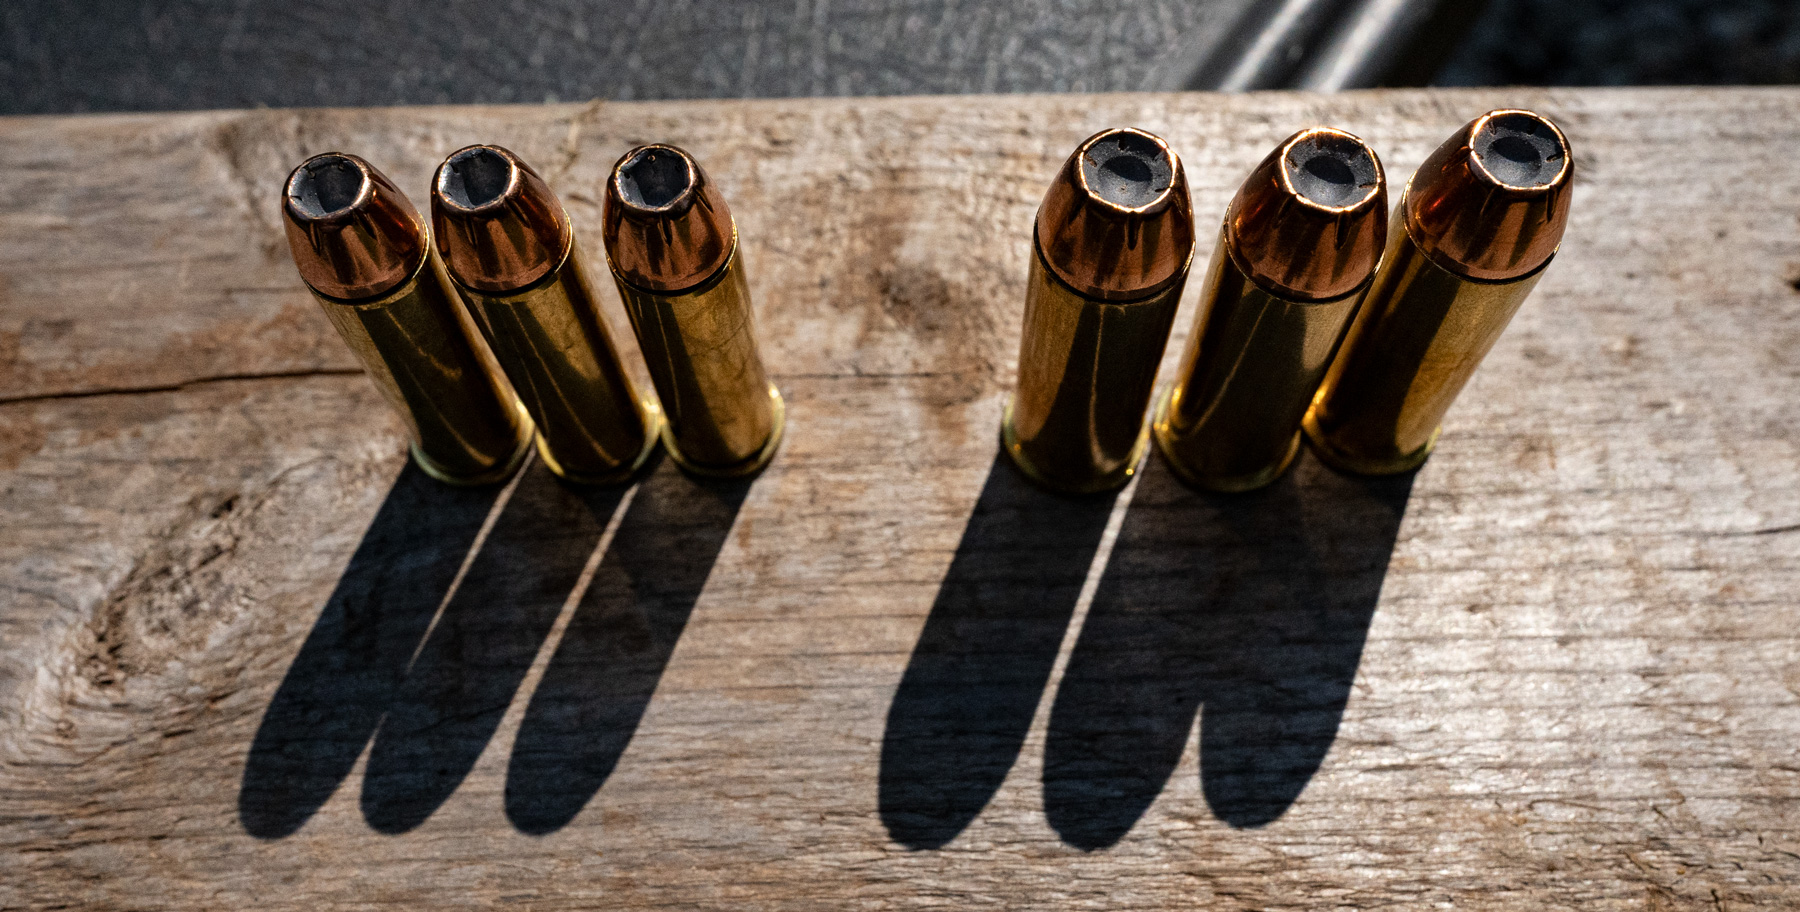 357 magnum vs 44 magnum ammo lined up on a table